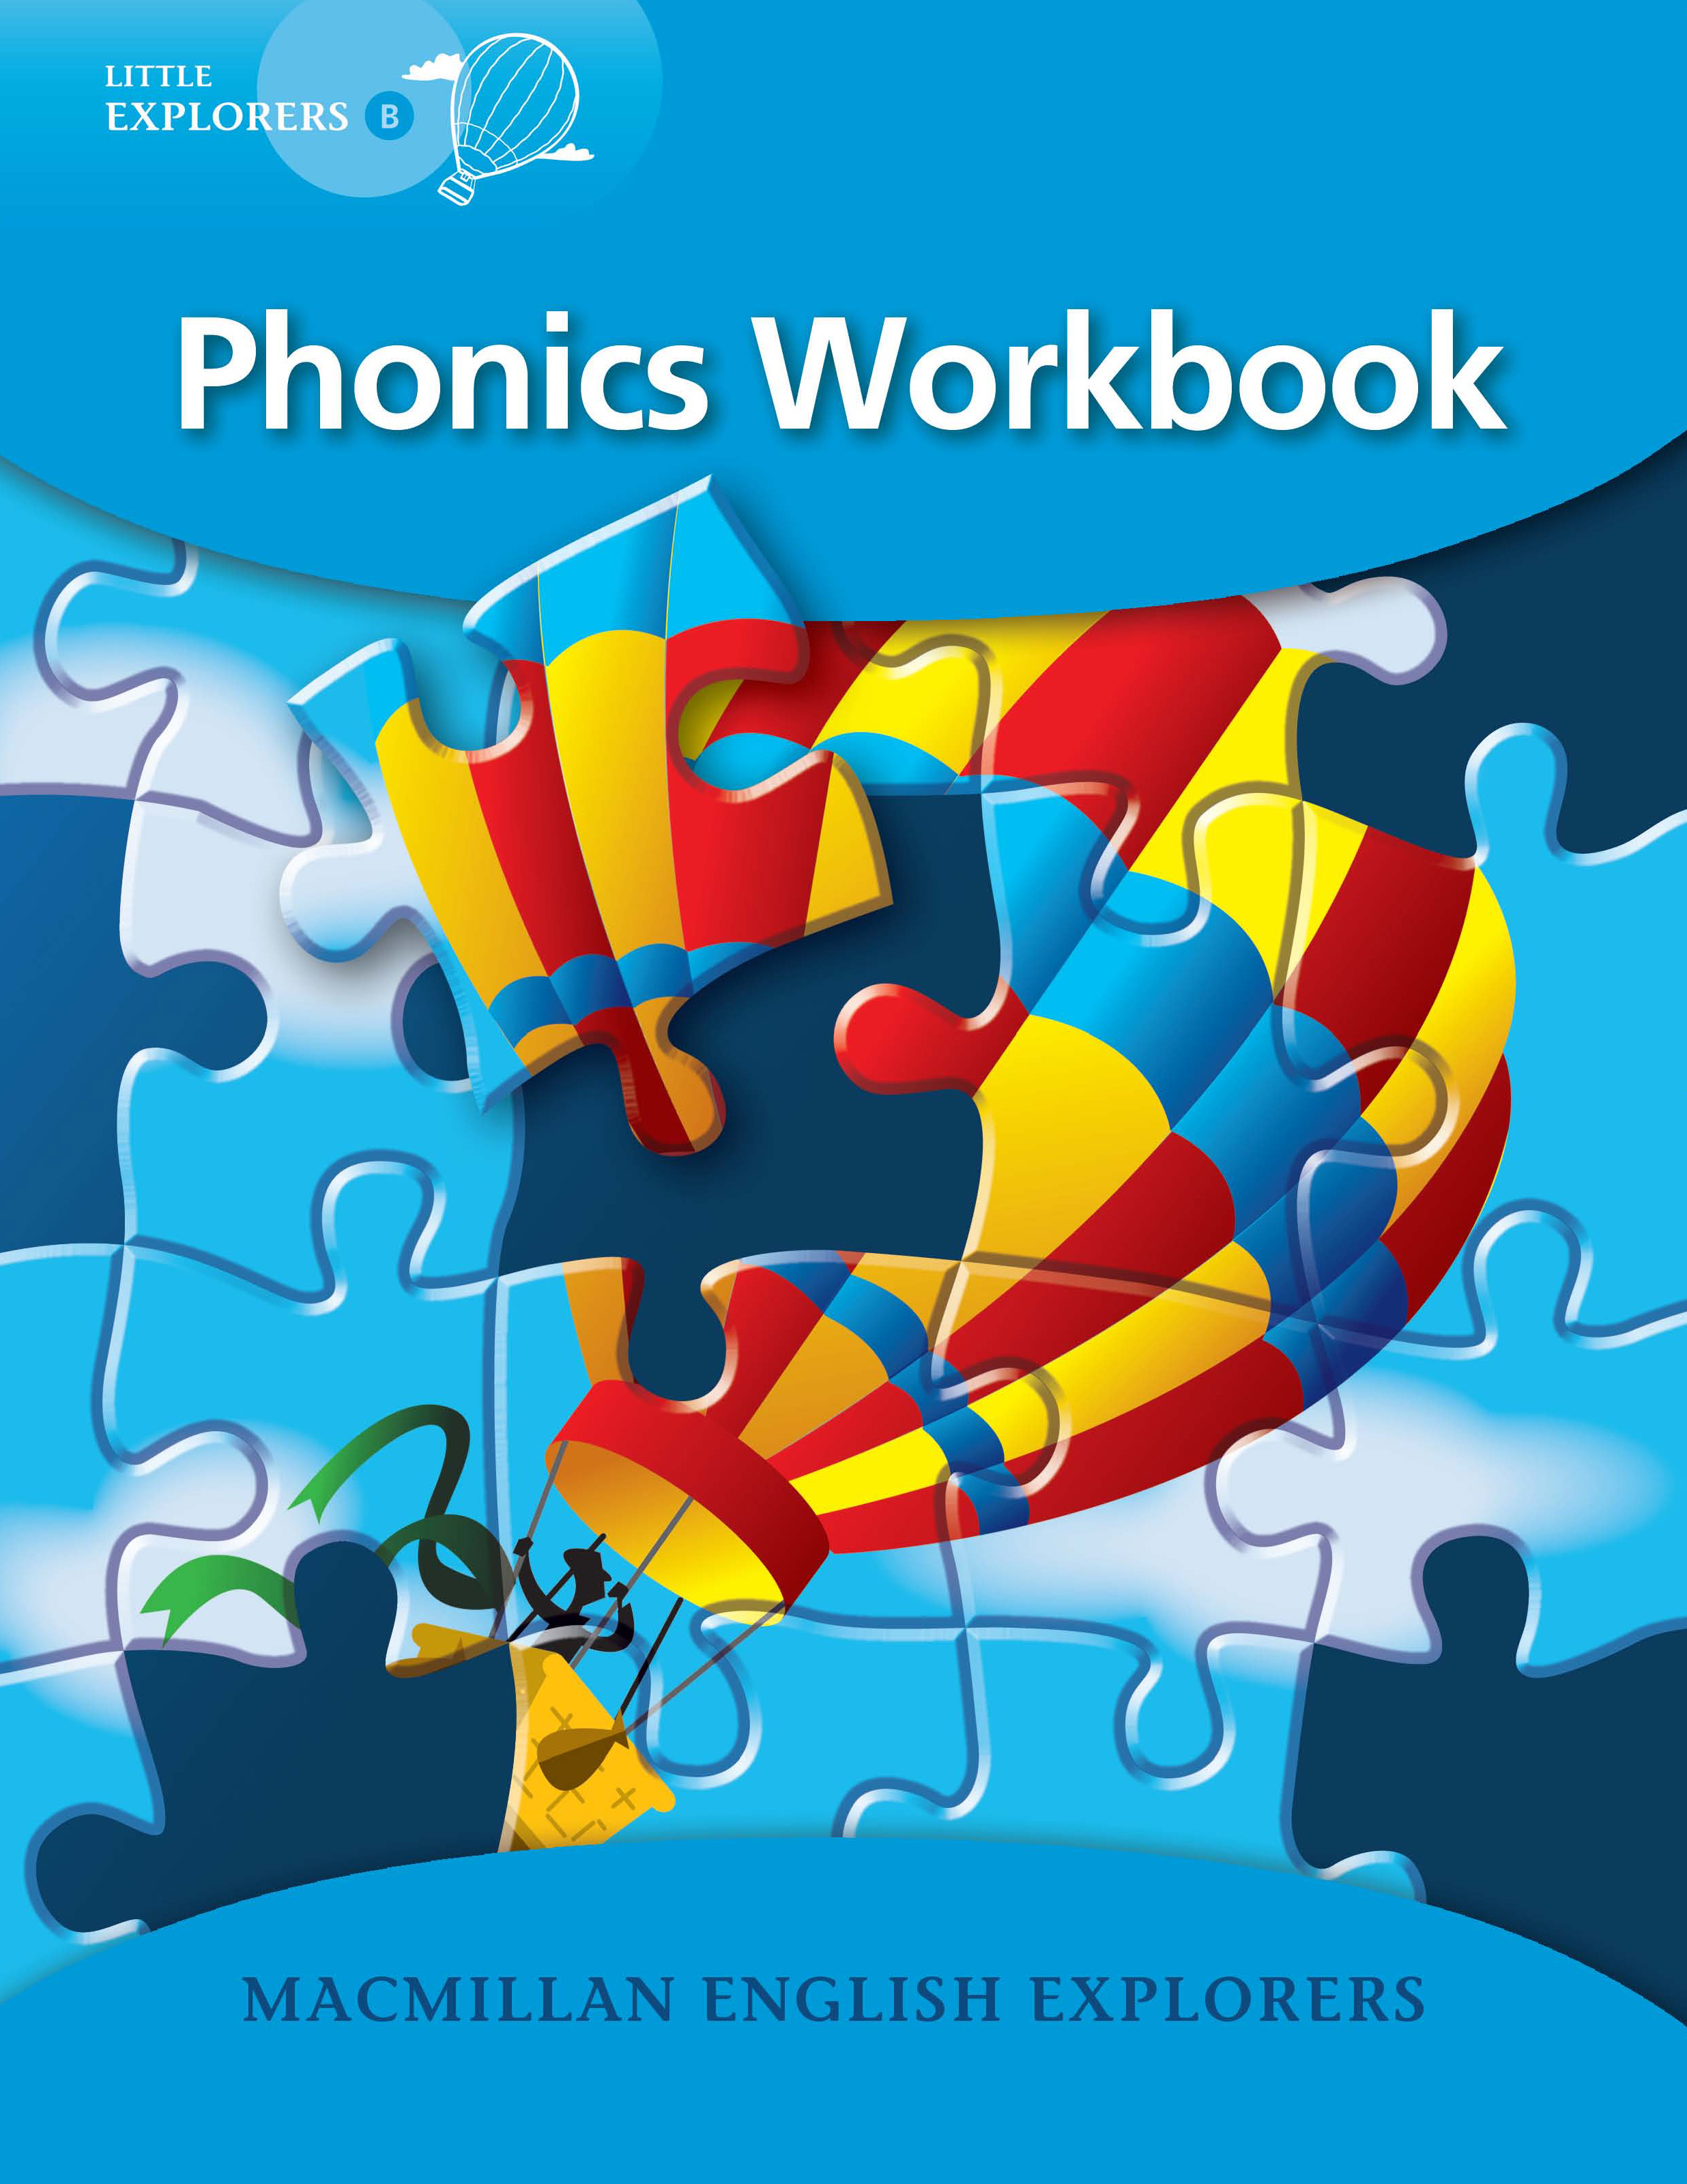 Little Explorers B: Phonics Workbook